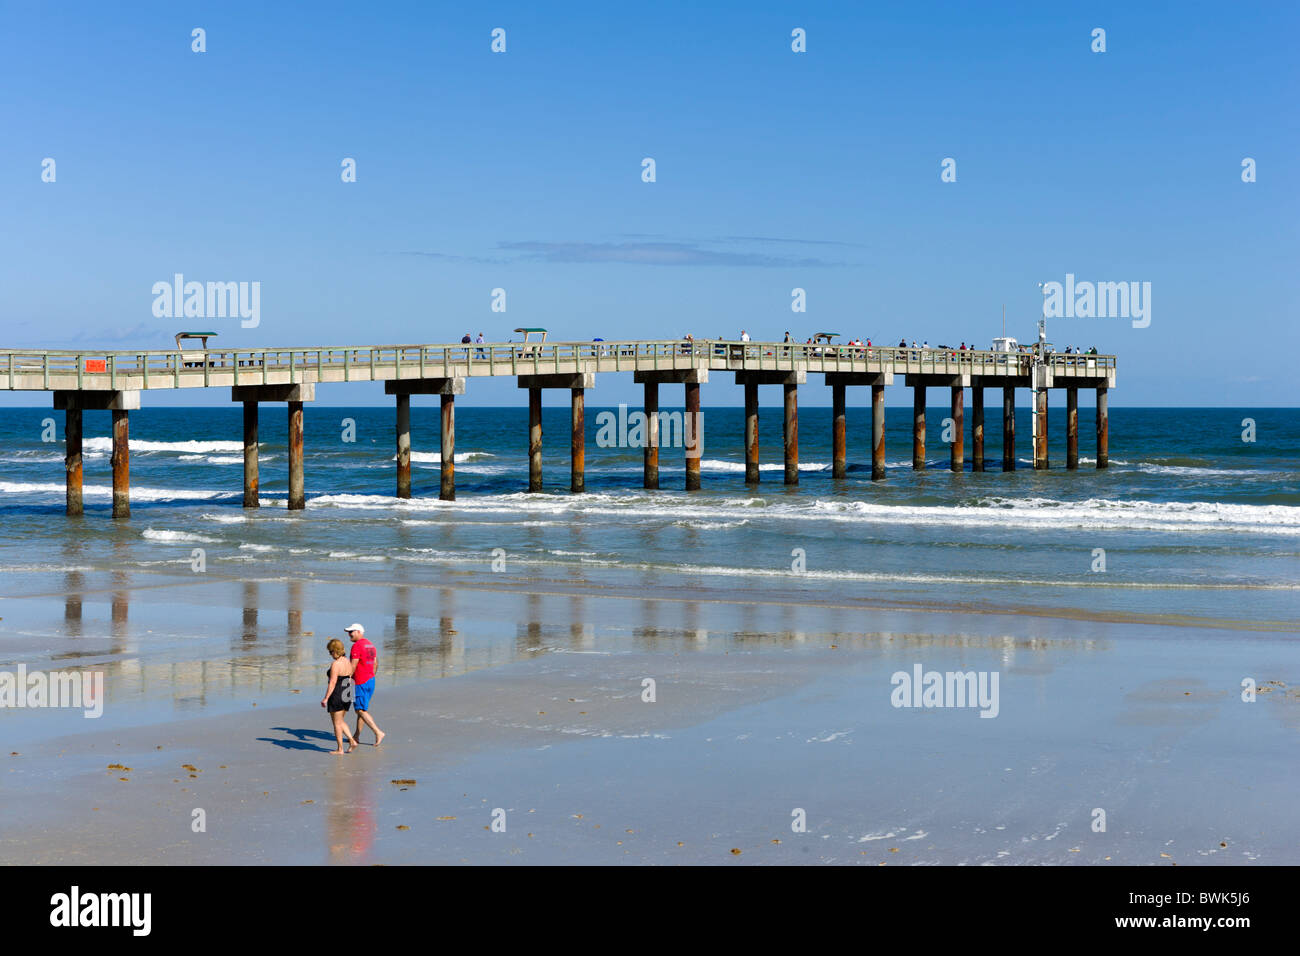 Fishing Pier at St Augustine Beach, Anastasia Island, St Augustine, Florida, USA - Stock Image